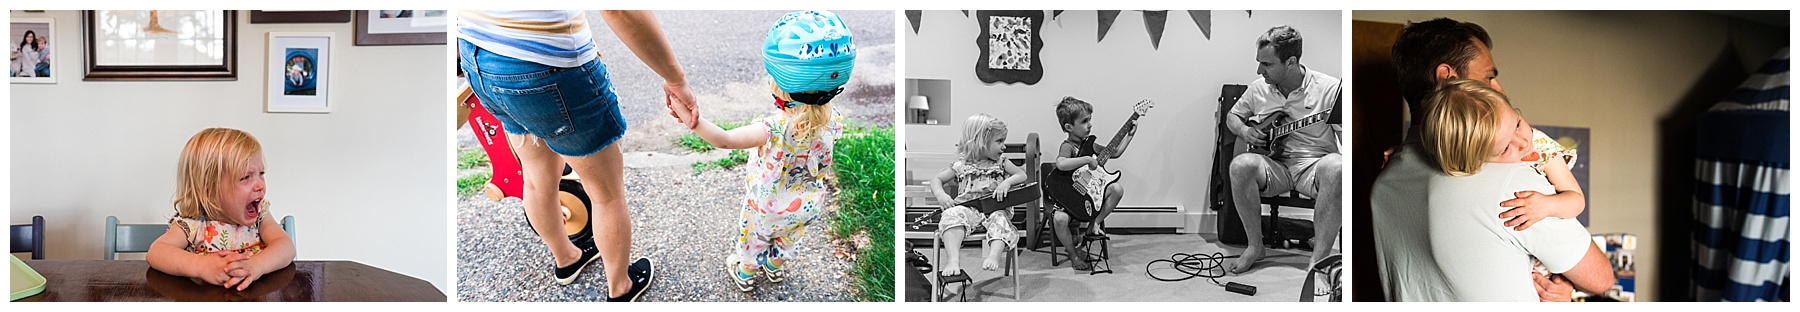 saint paul minnesota documentary family photography session